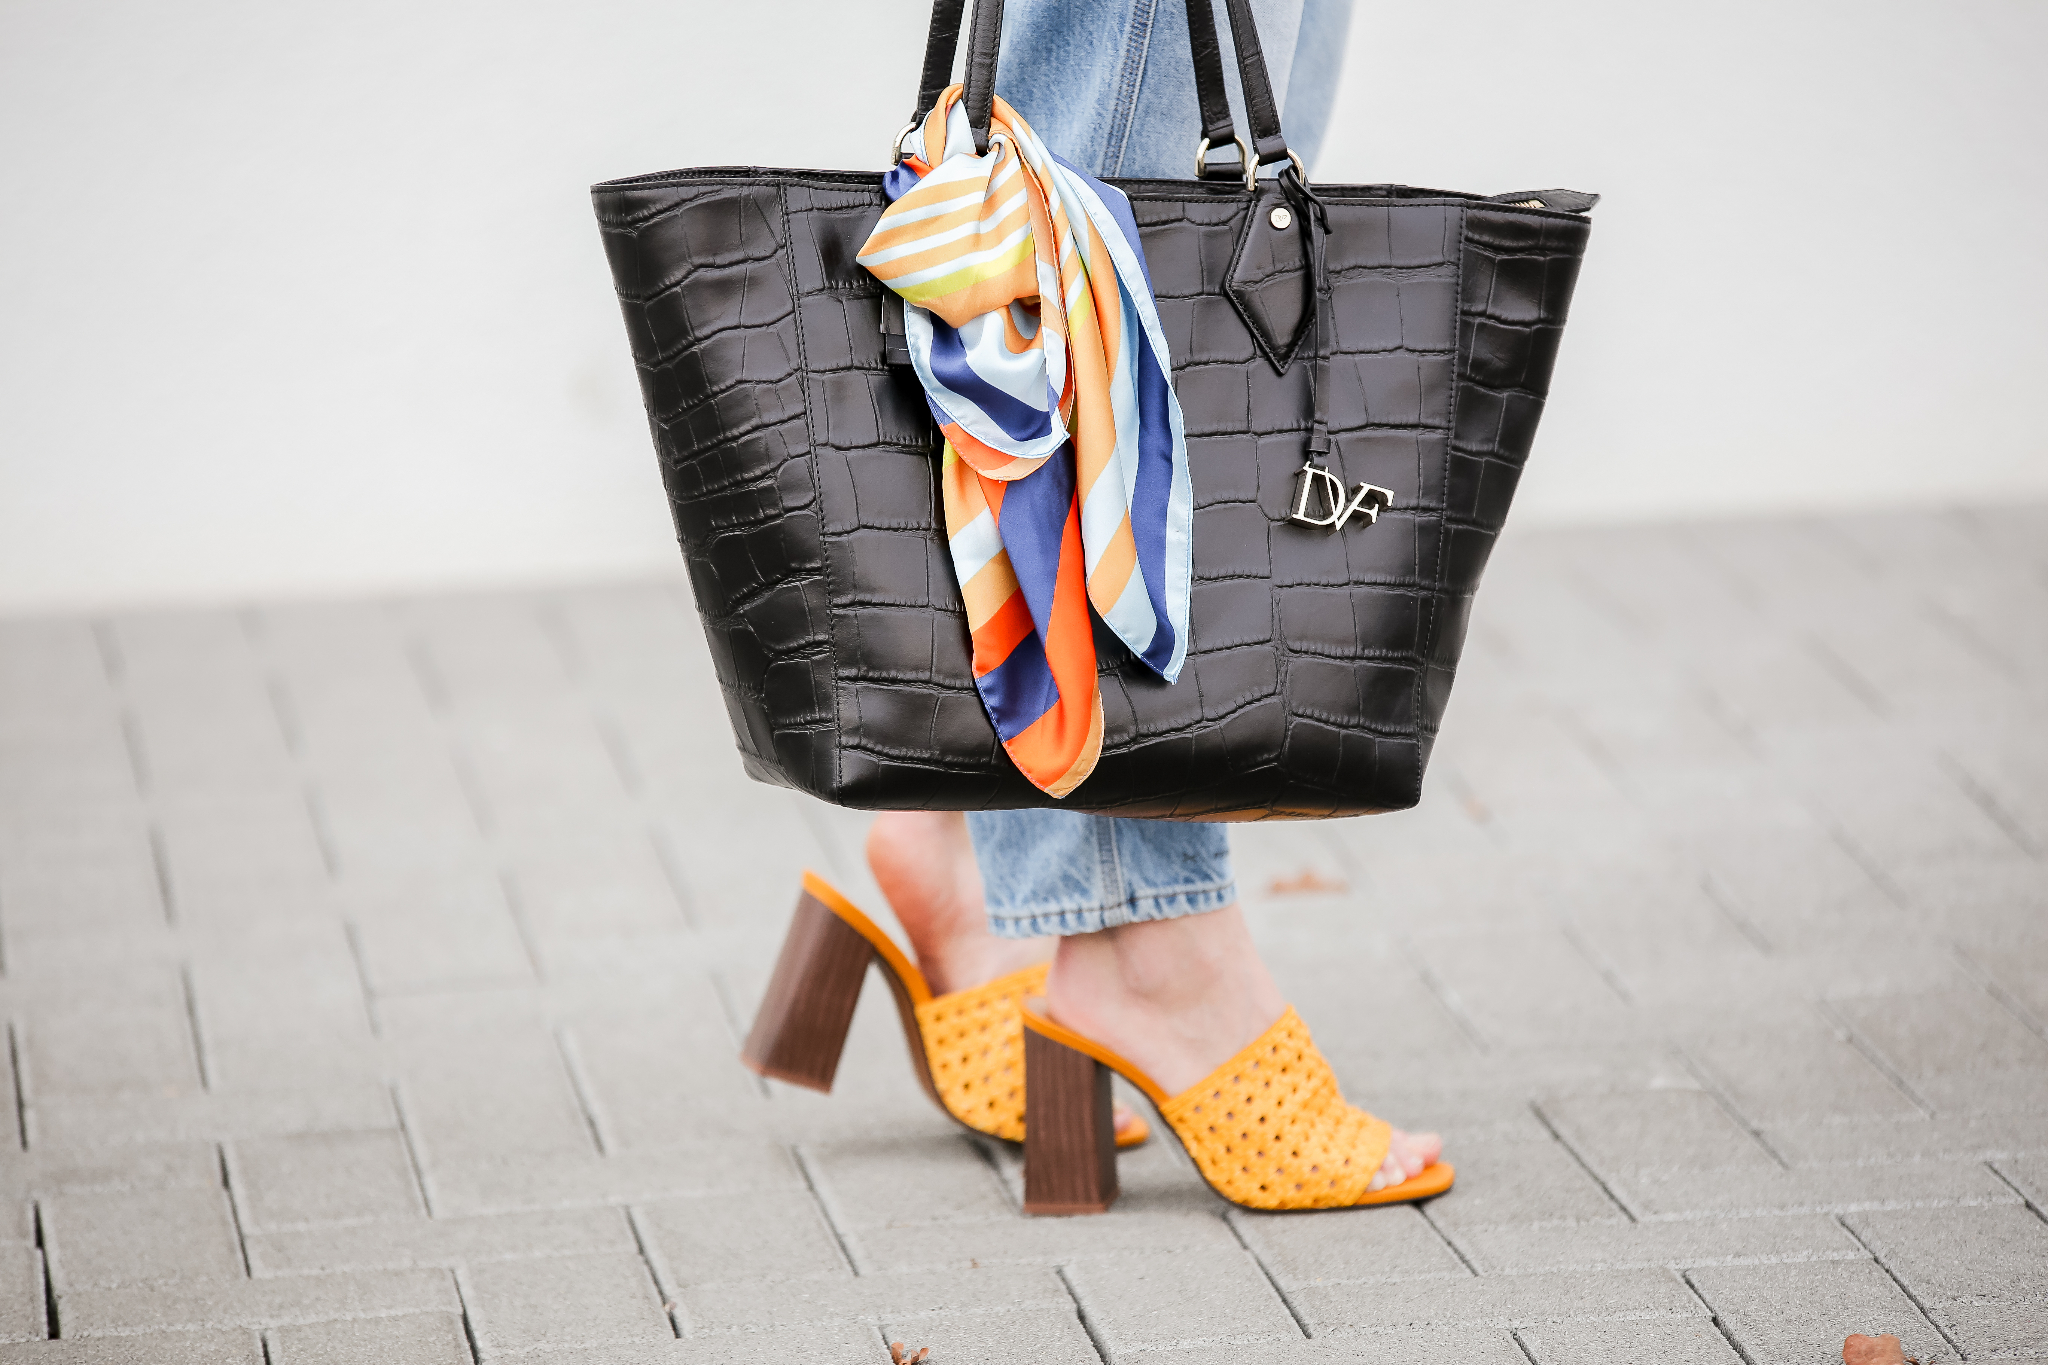 Fashion_Outfit_Yellow_Mules_DvF_Shopper_MOD - by Monique-4